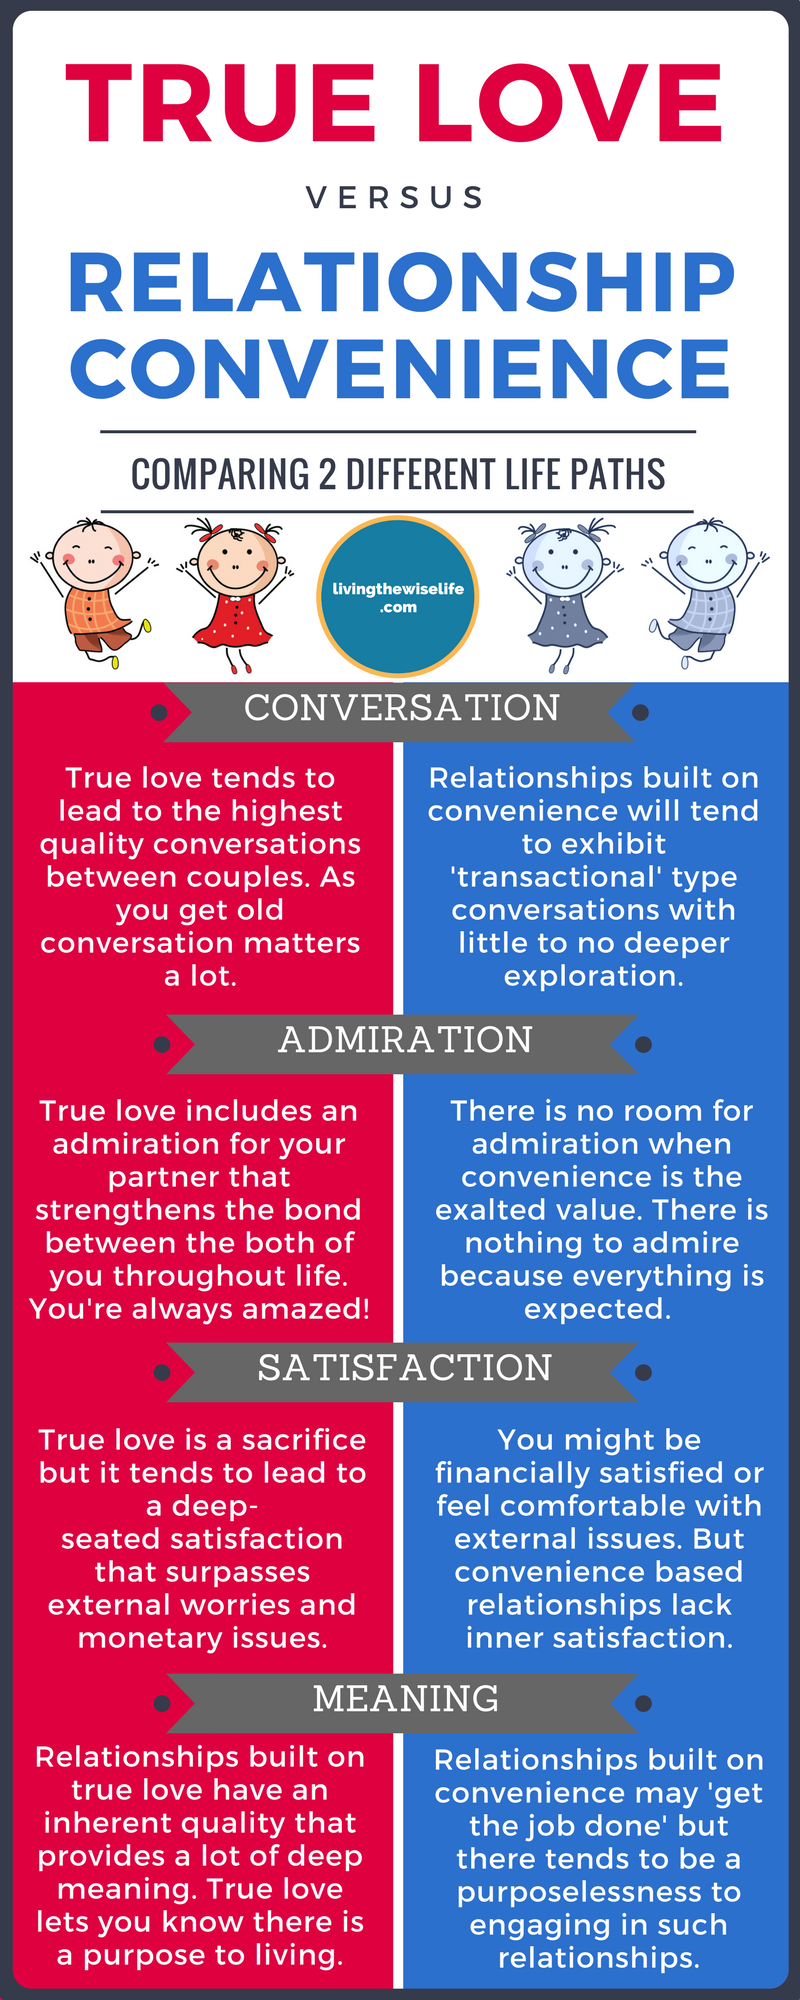 Value My Trade In >> True Love vs Relationship Convenience (Infographic ...